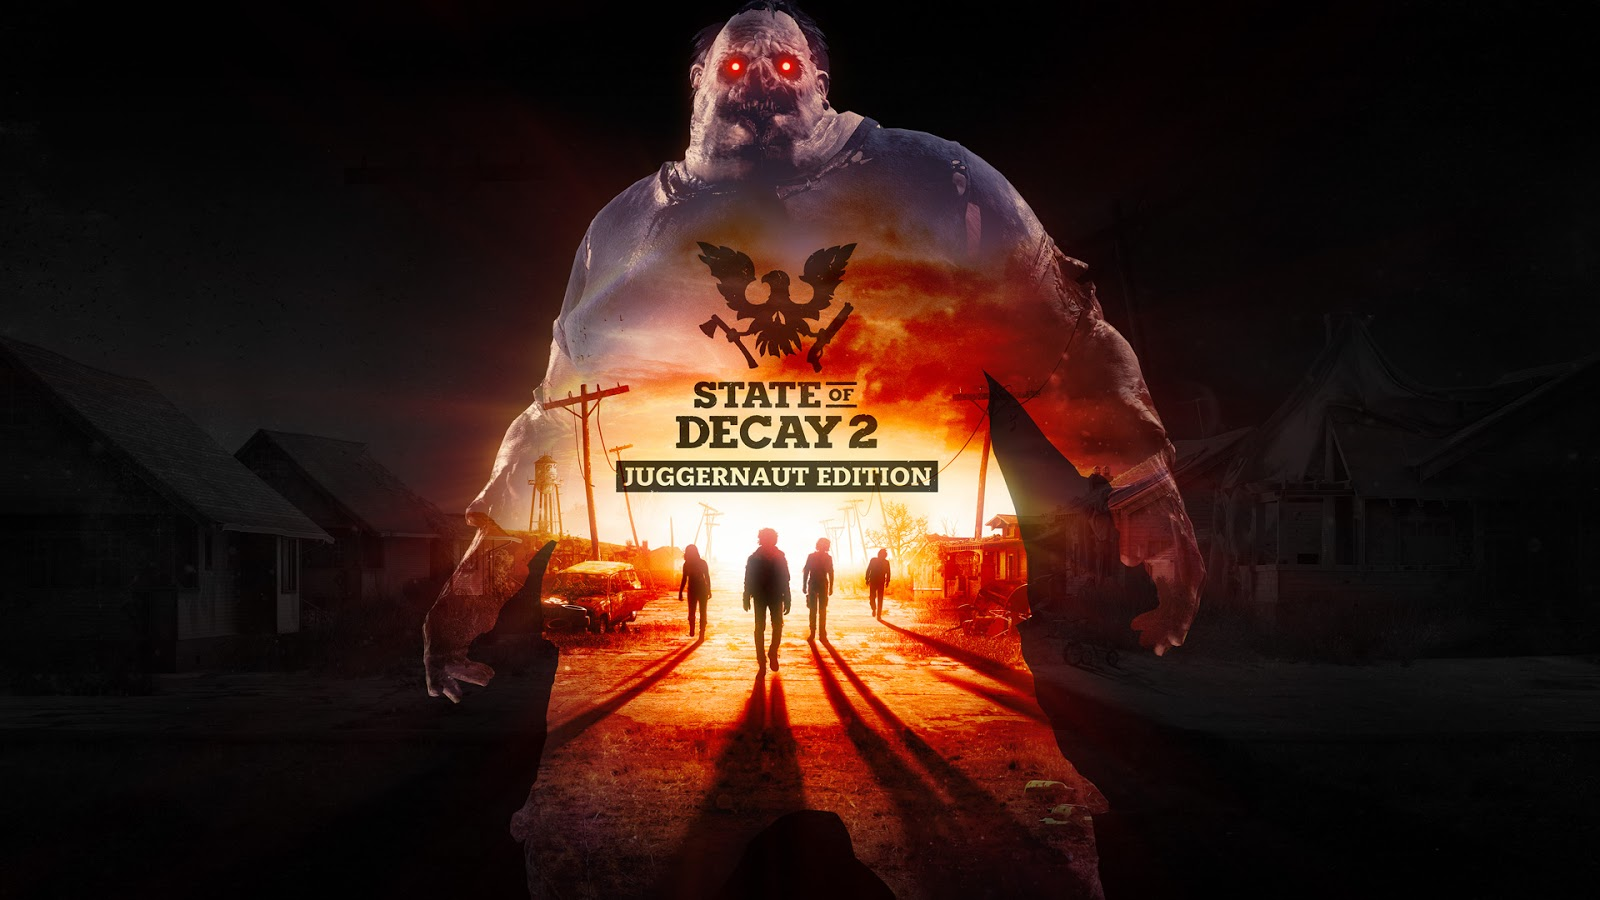 state-of-decay-2-juggernaut-edition